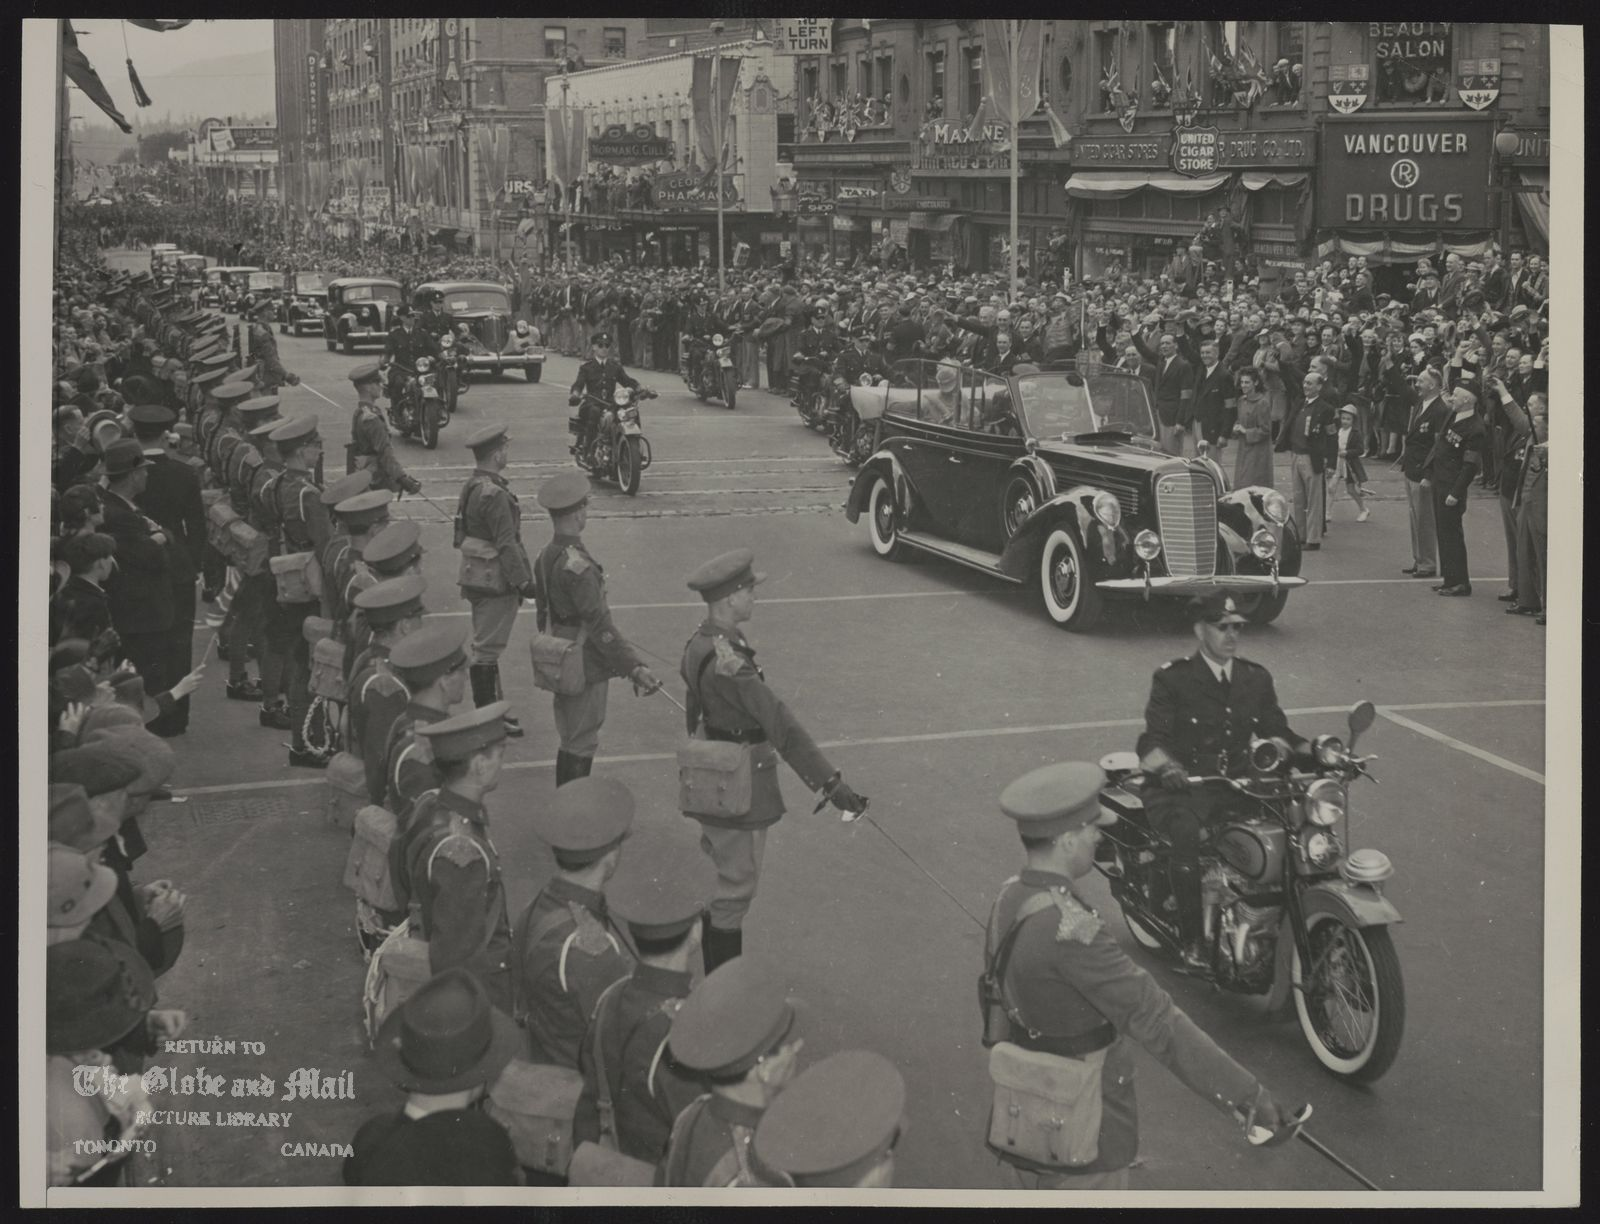 The notes transcribed from the back of this photograph are as follows: ROYAL FAMILY GREAT BRITAIN KING GEORGE VI & QUEEN ELIZABETH VISIT TO CANADA, 1939 BRITISH COLUMBIANS GREAT ROYAL PAIR. King George VI and Queen Elizabeth were greeted by massed thousands in downtown Vancouver, B.C., May 29, [1939] on their 52-mile tour of the city.